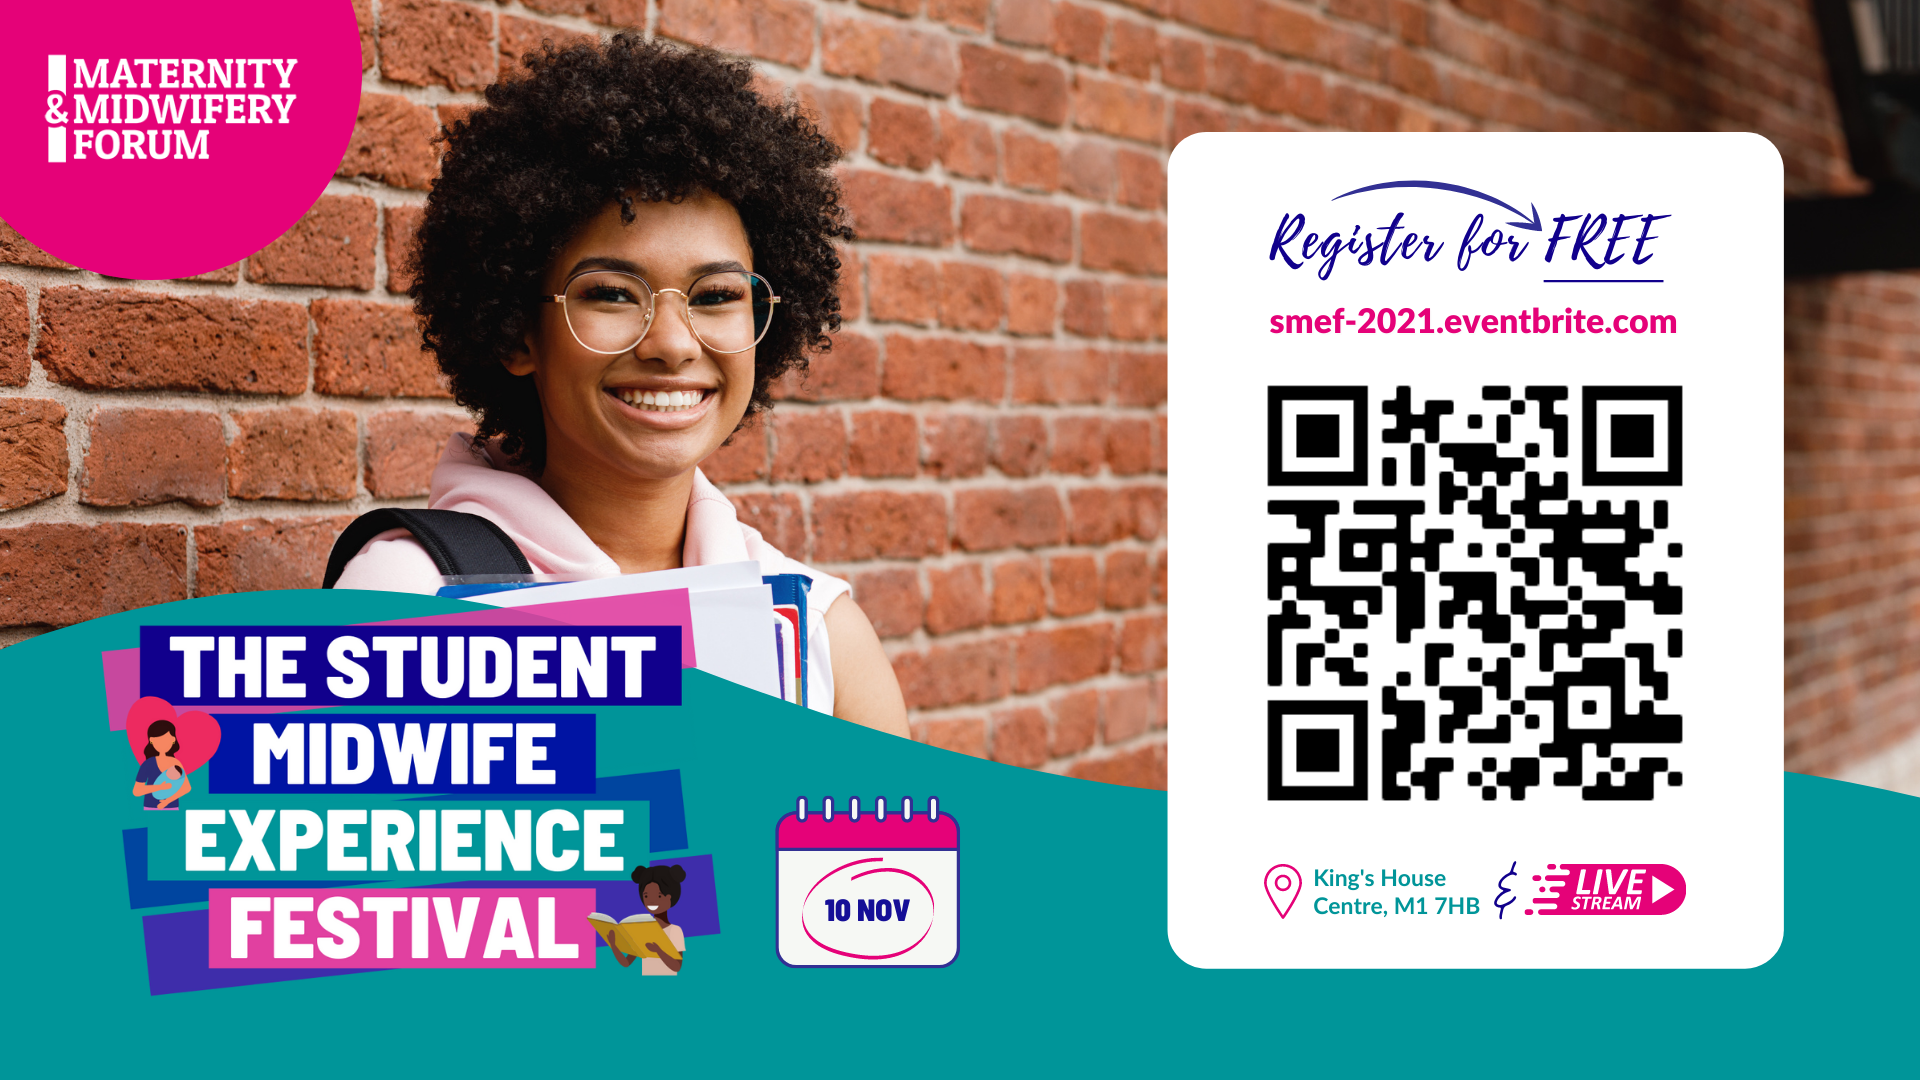 https://www.eventbrite.co.uk/e/the-student-midwife-experience-festival-tickets-159521768905